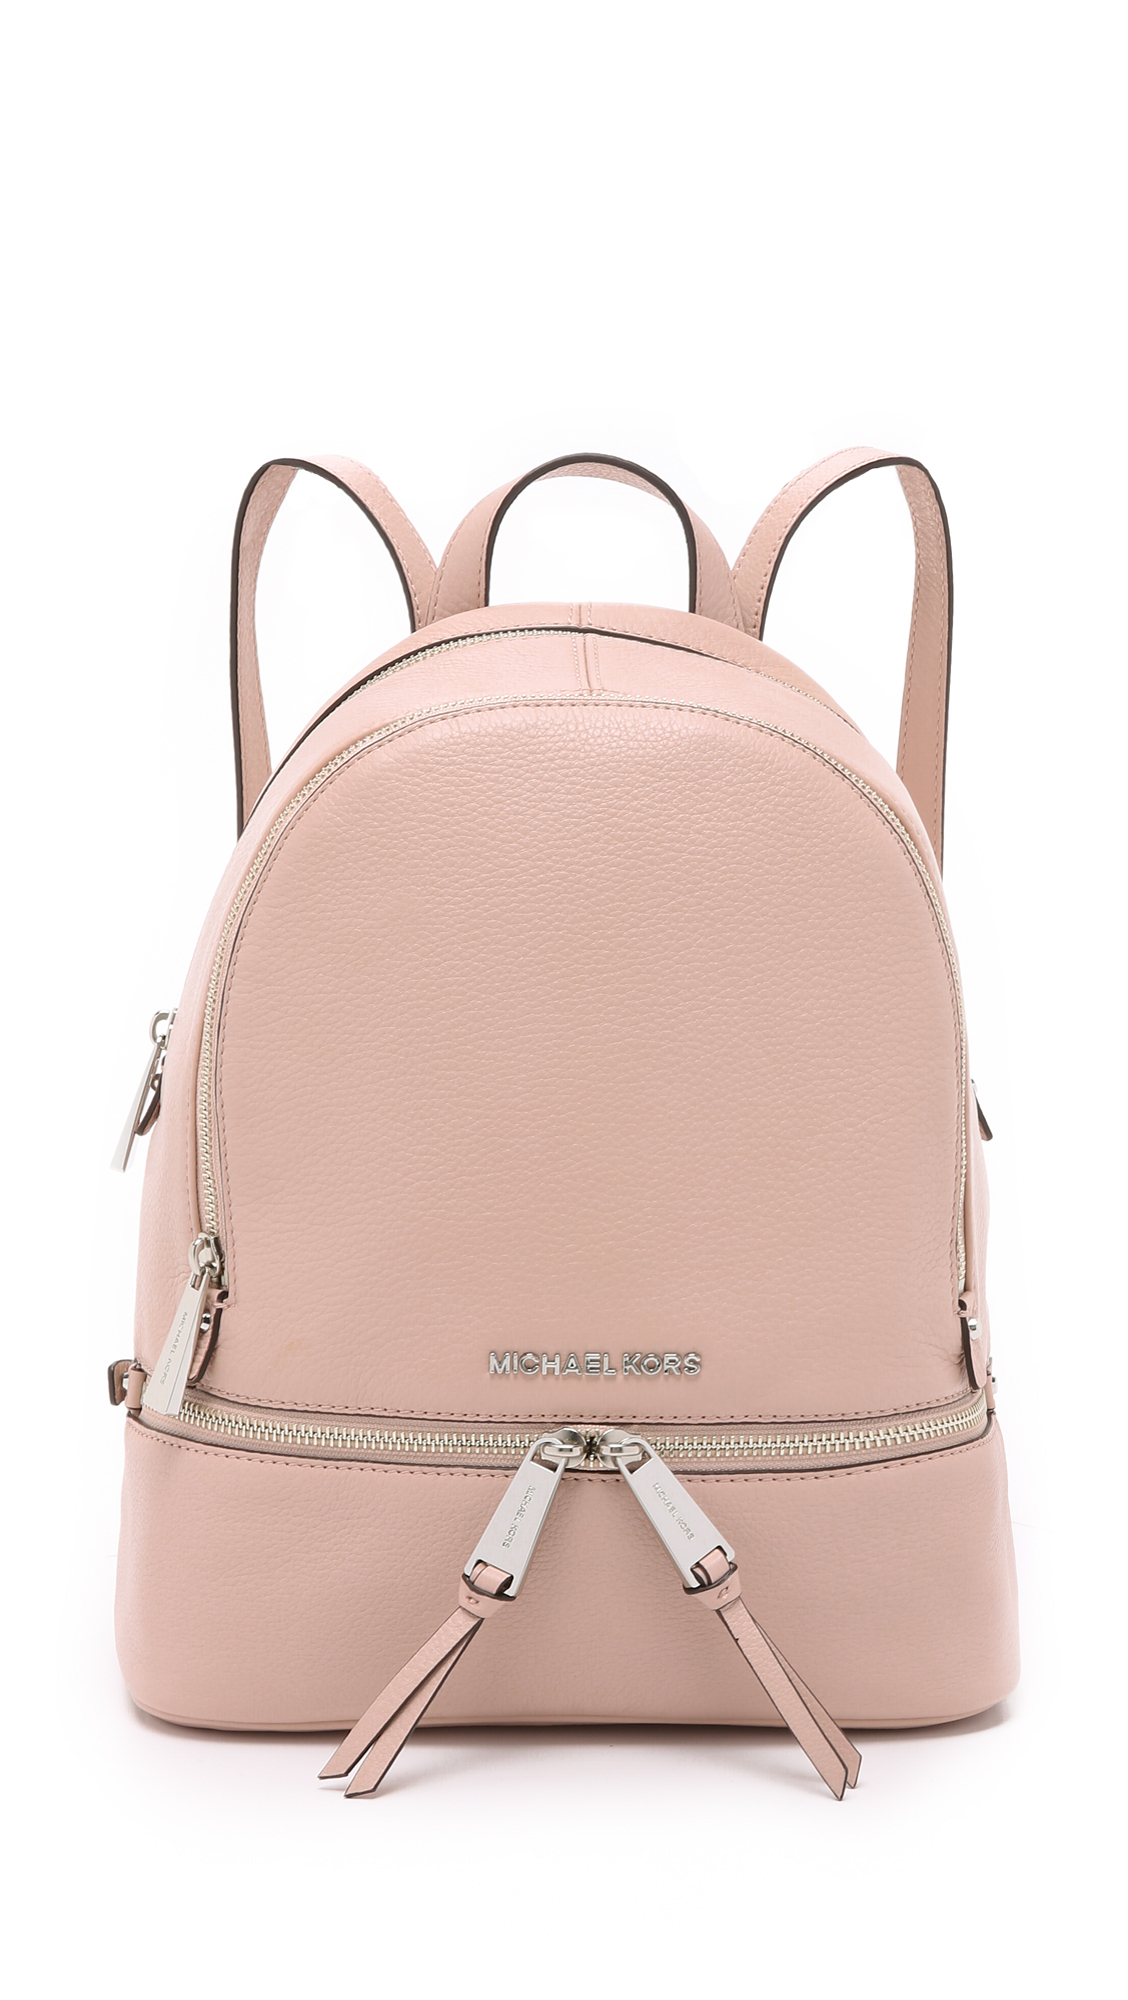 53f126eec0bf ... zip extra small studded brown backpack d4582 a77c2; best lyst michael  michael kors rhea small backpack ballet in pink b78ed fae41